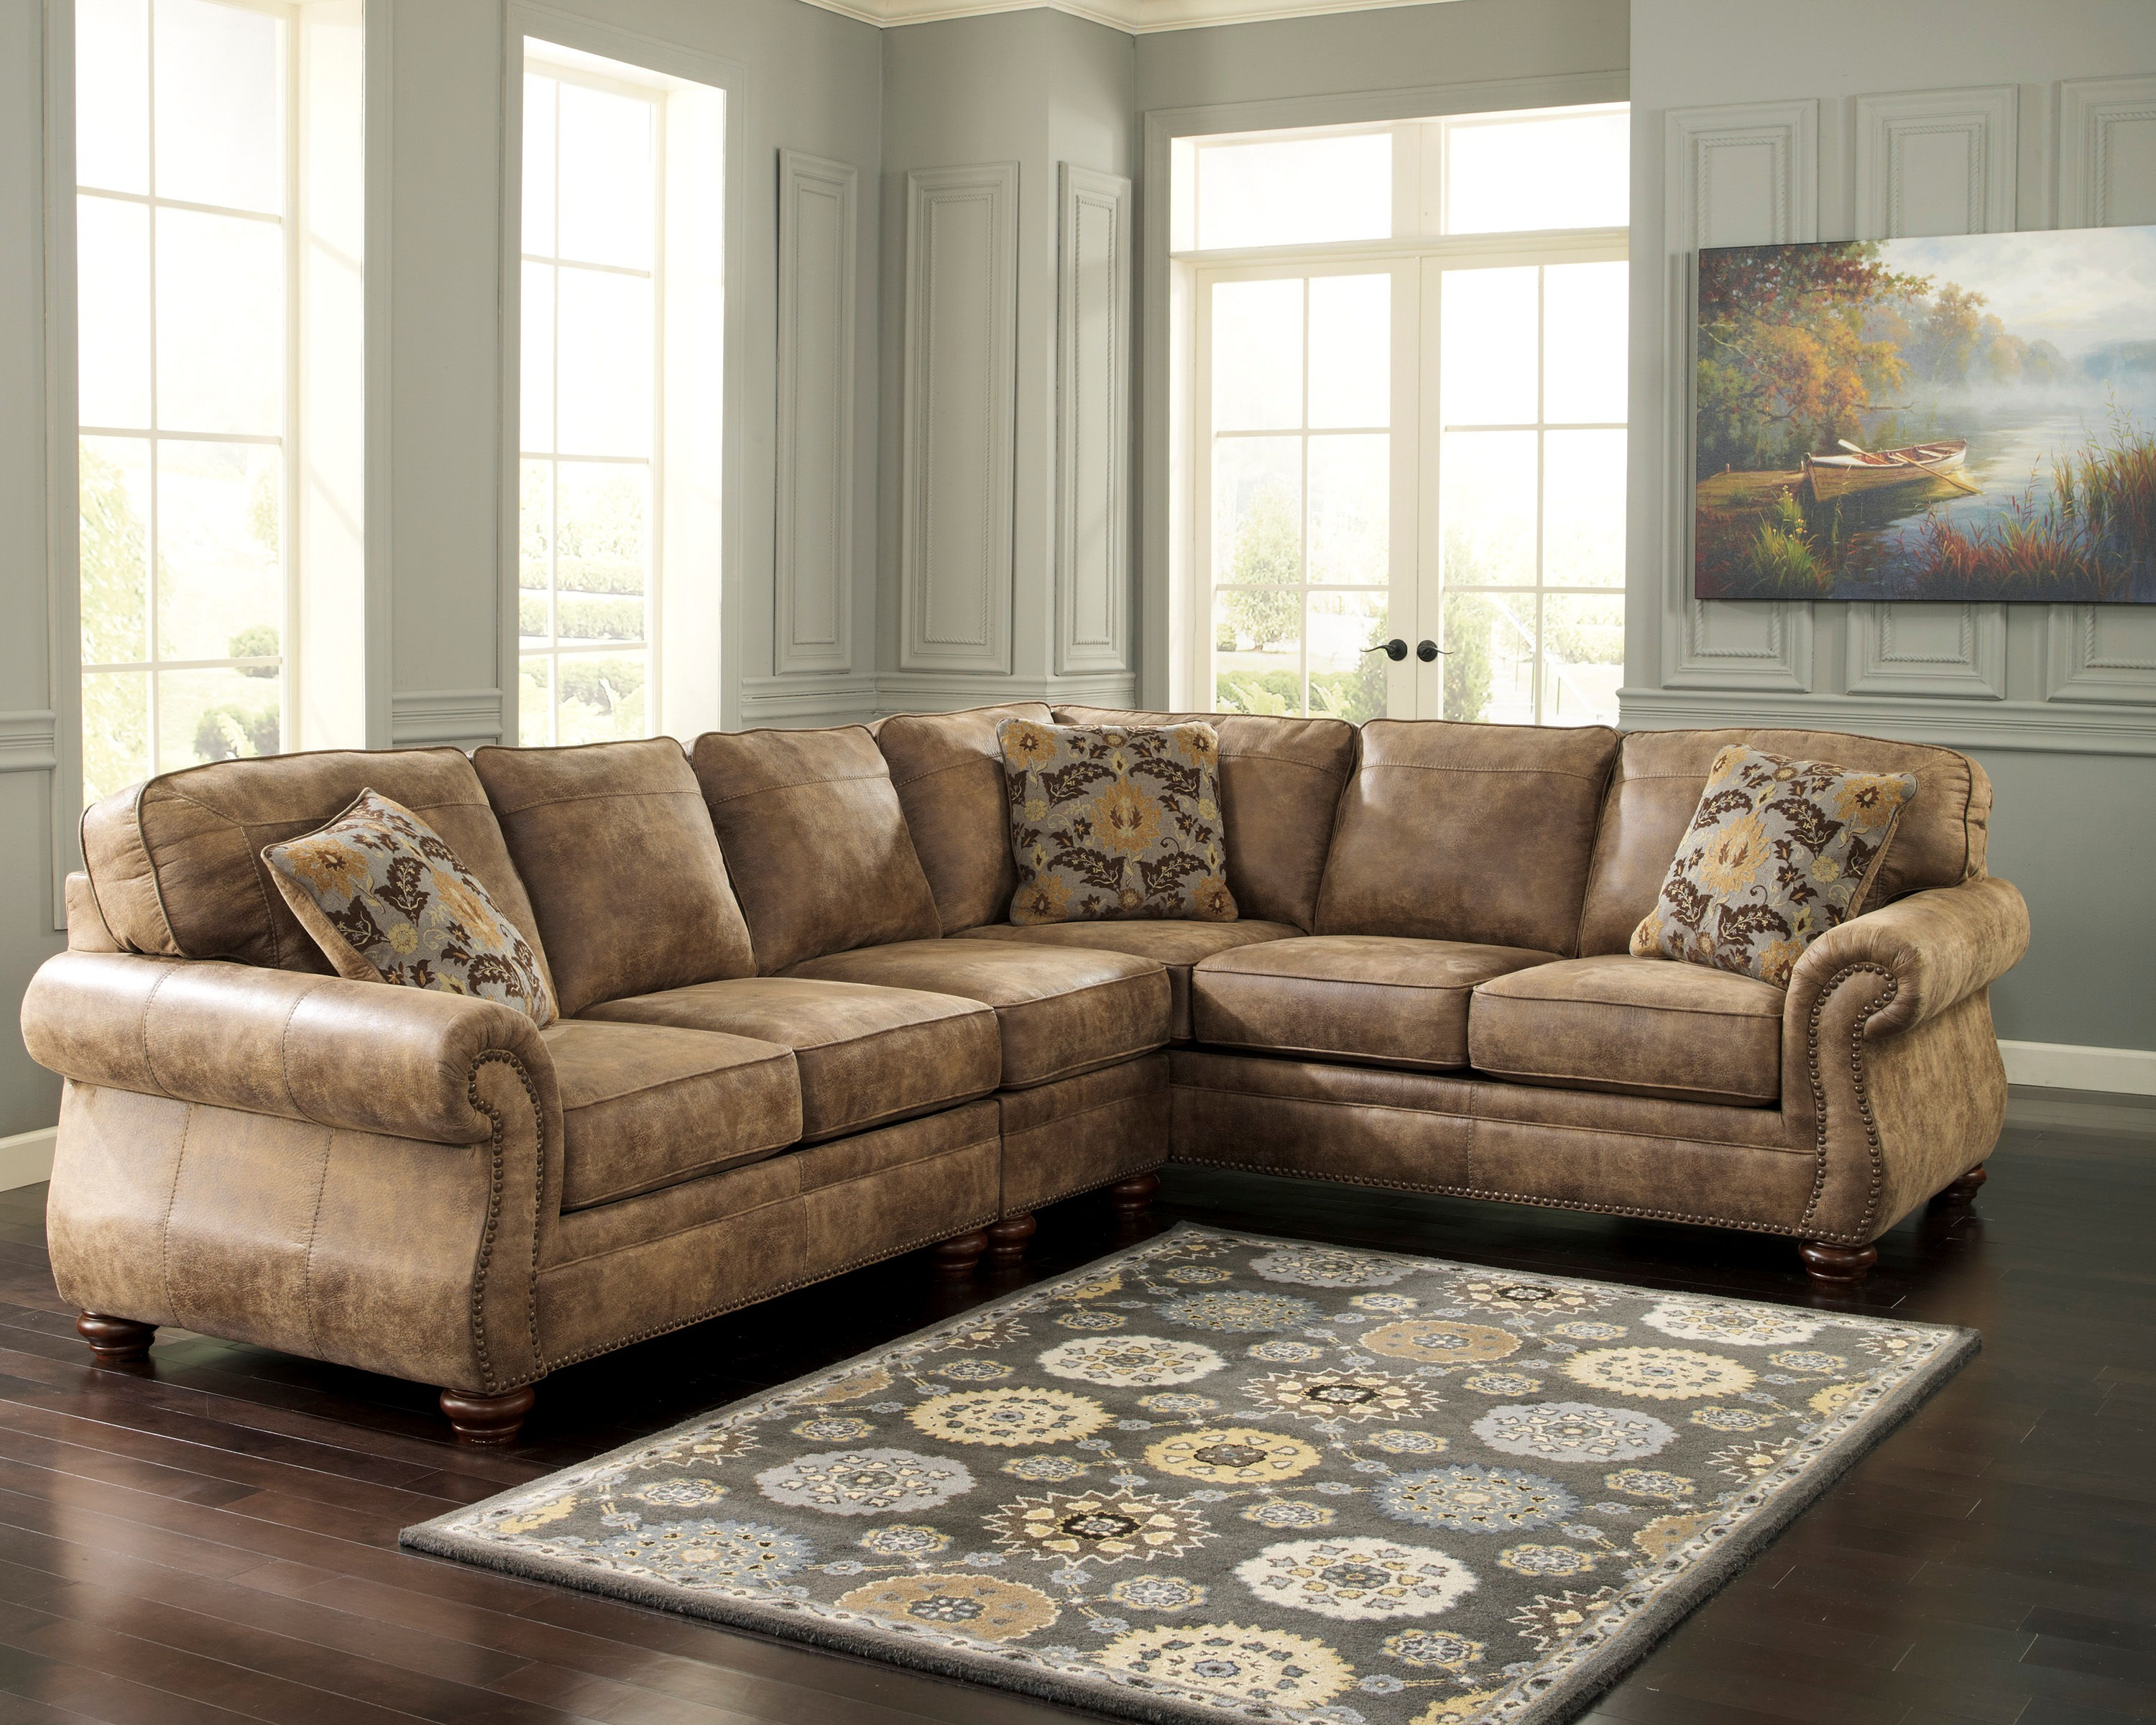 Turdur 2 Piece Sectionals With Raf Loveseat Pertaining To Most Up To Date Laf Sofa Raf Loveseat (Gallery 6 of 20)